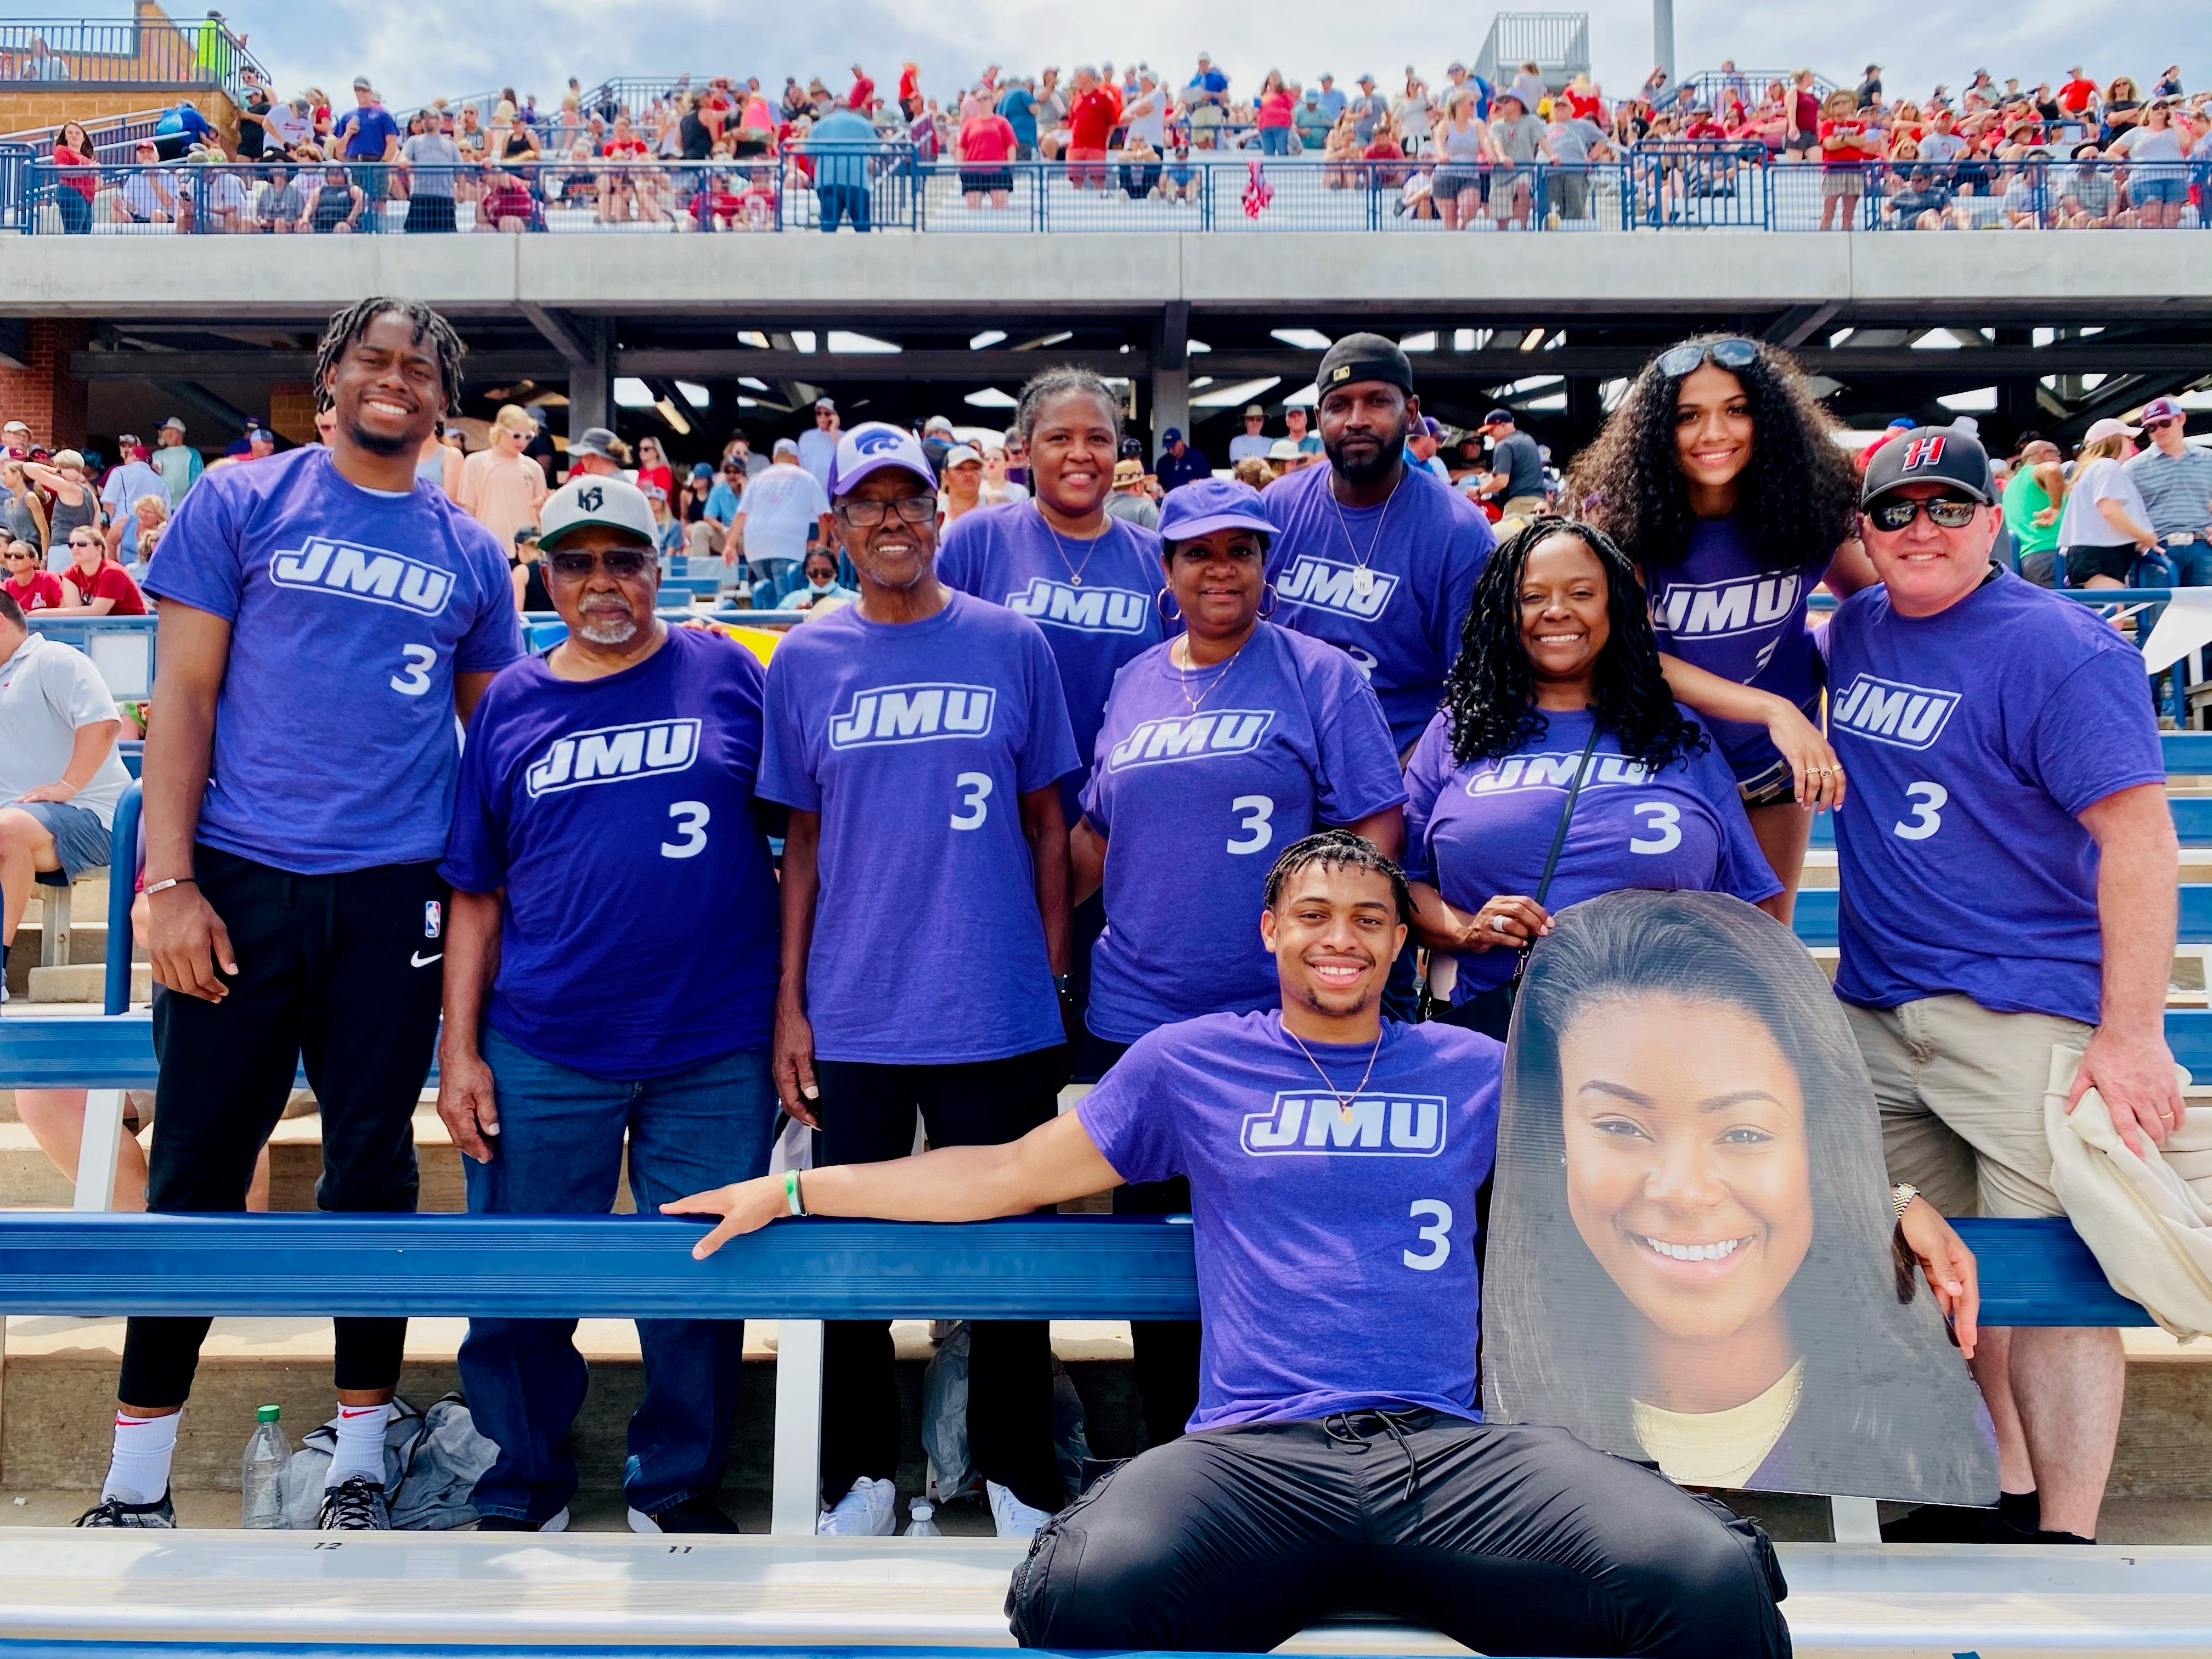 JMU's Odicci Alexander, with Spurs' Keldon Johnson & family at her side, becomes face of WCWS